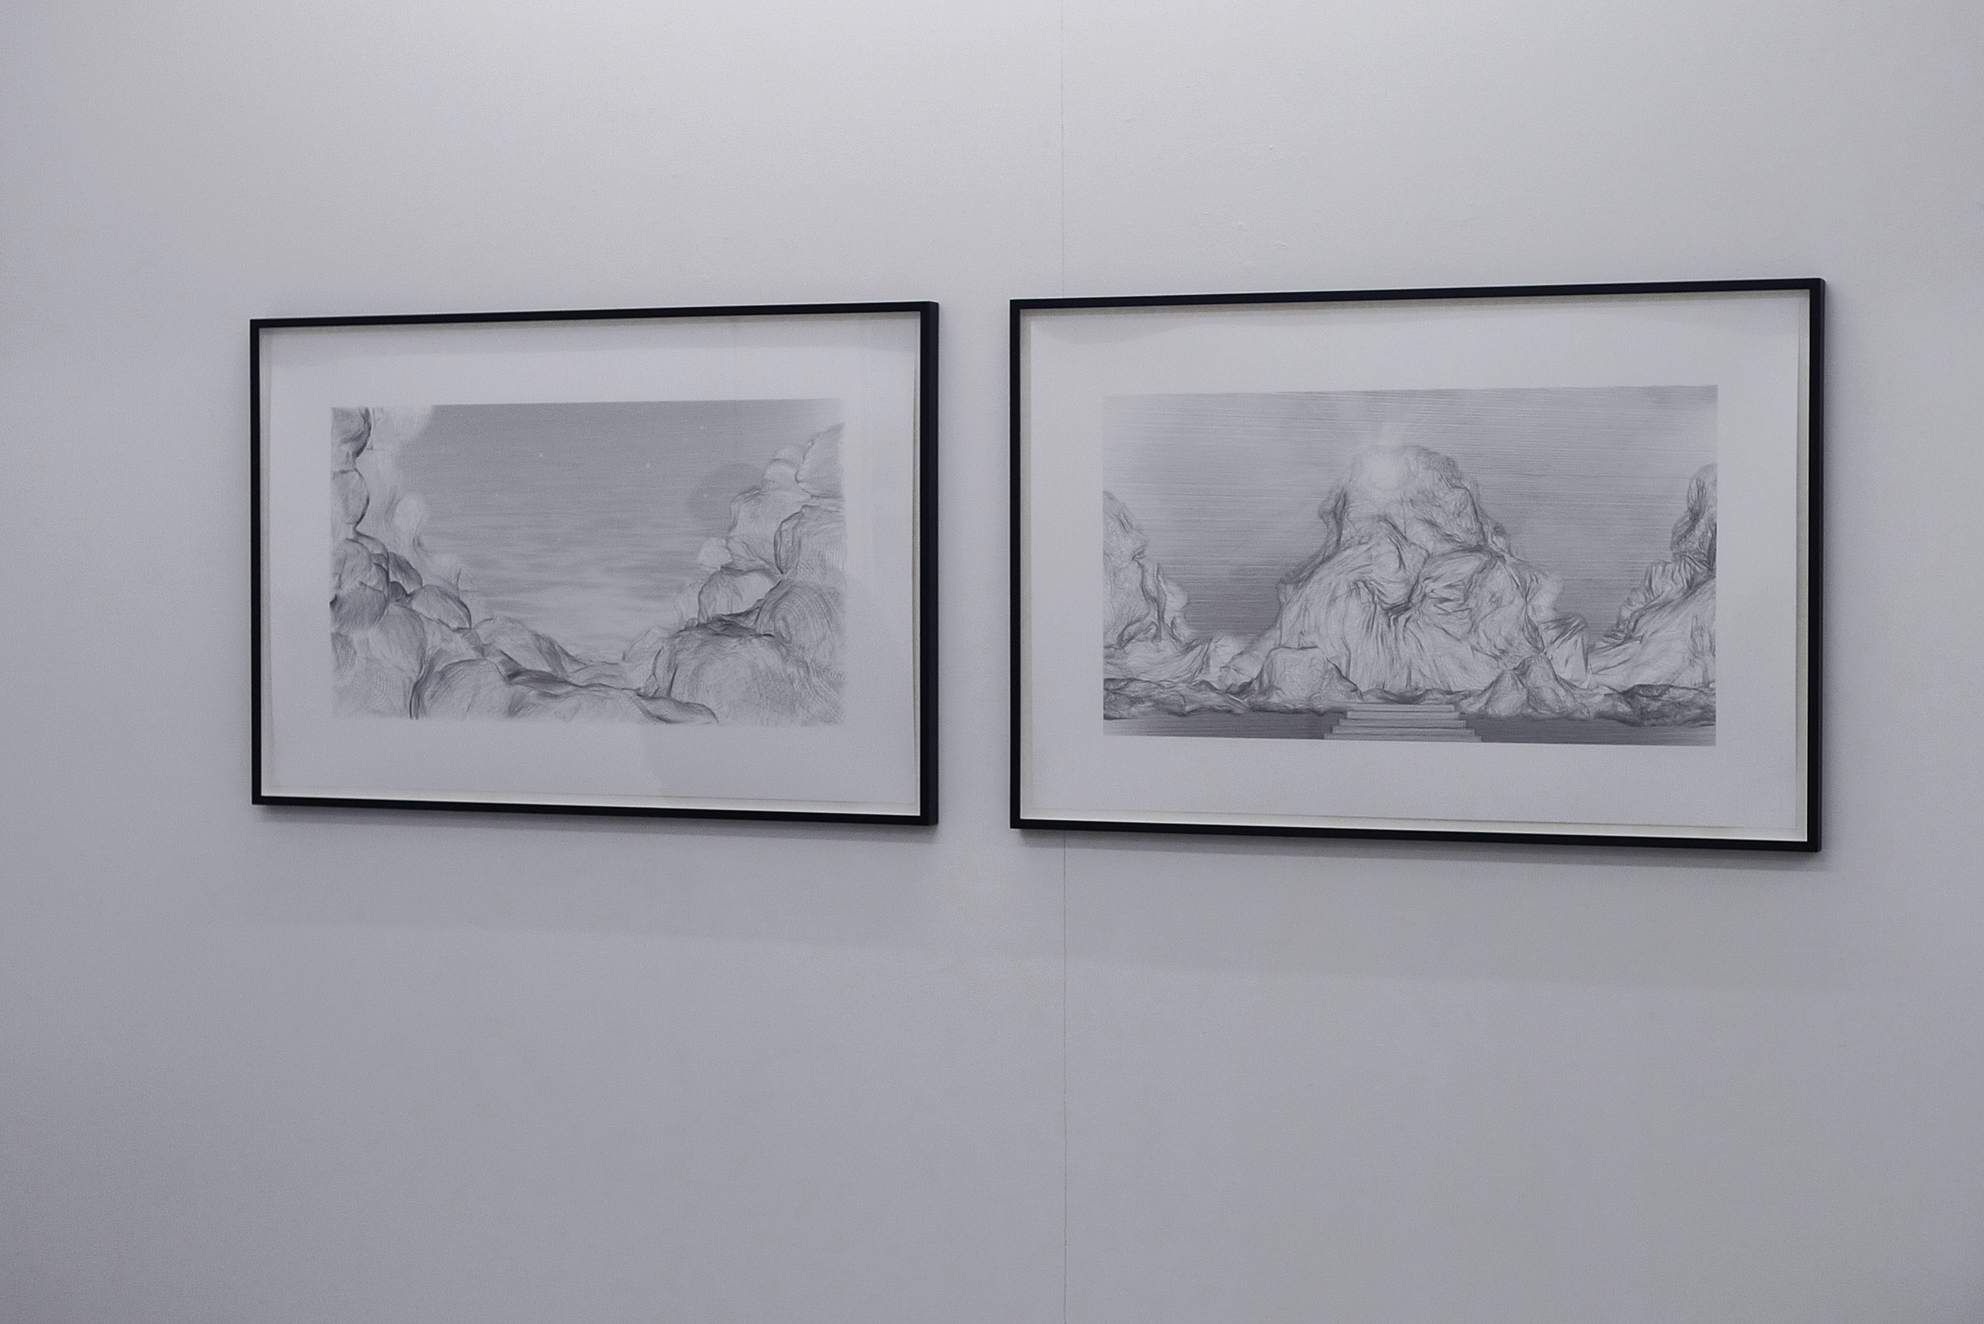 Pictures, series of 5 digital 'drawings', inkjet print / black wooden frame and glass, 80 x 120 x 4 cm, in collaboration with Swann Thommen